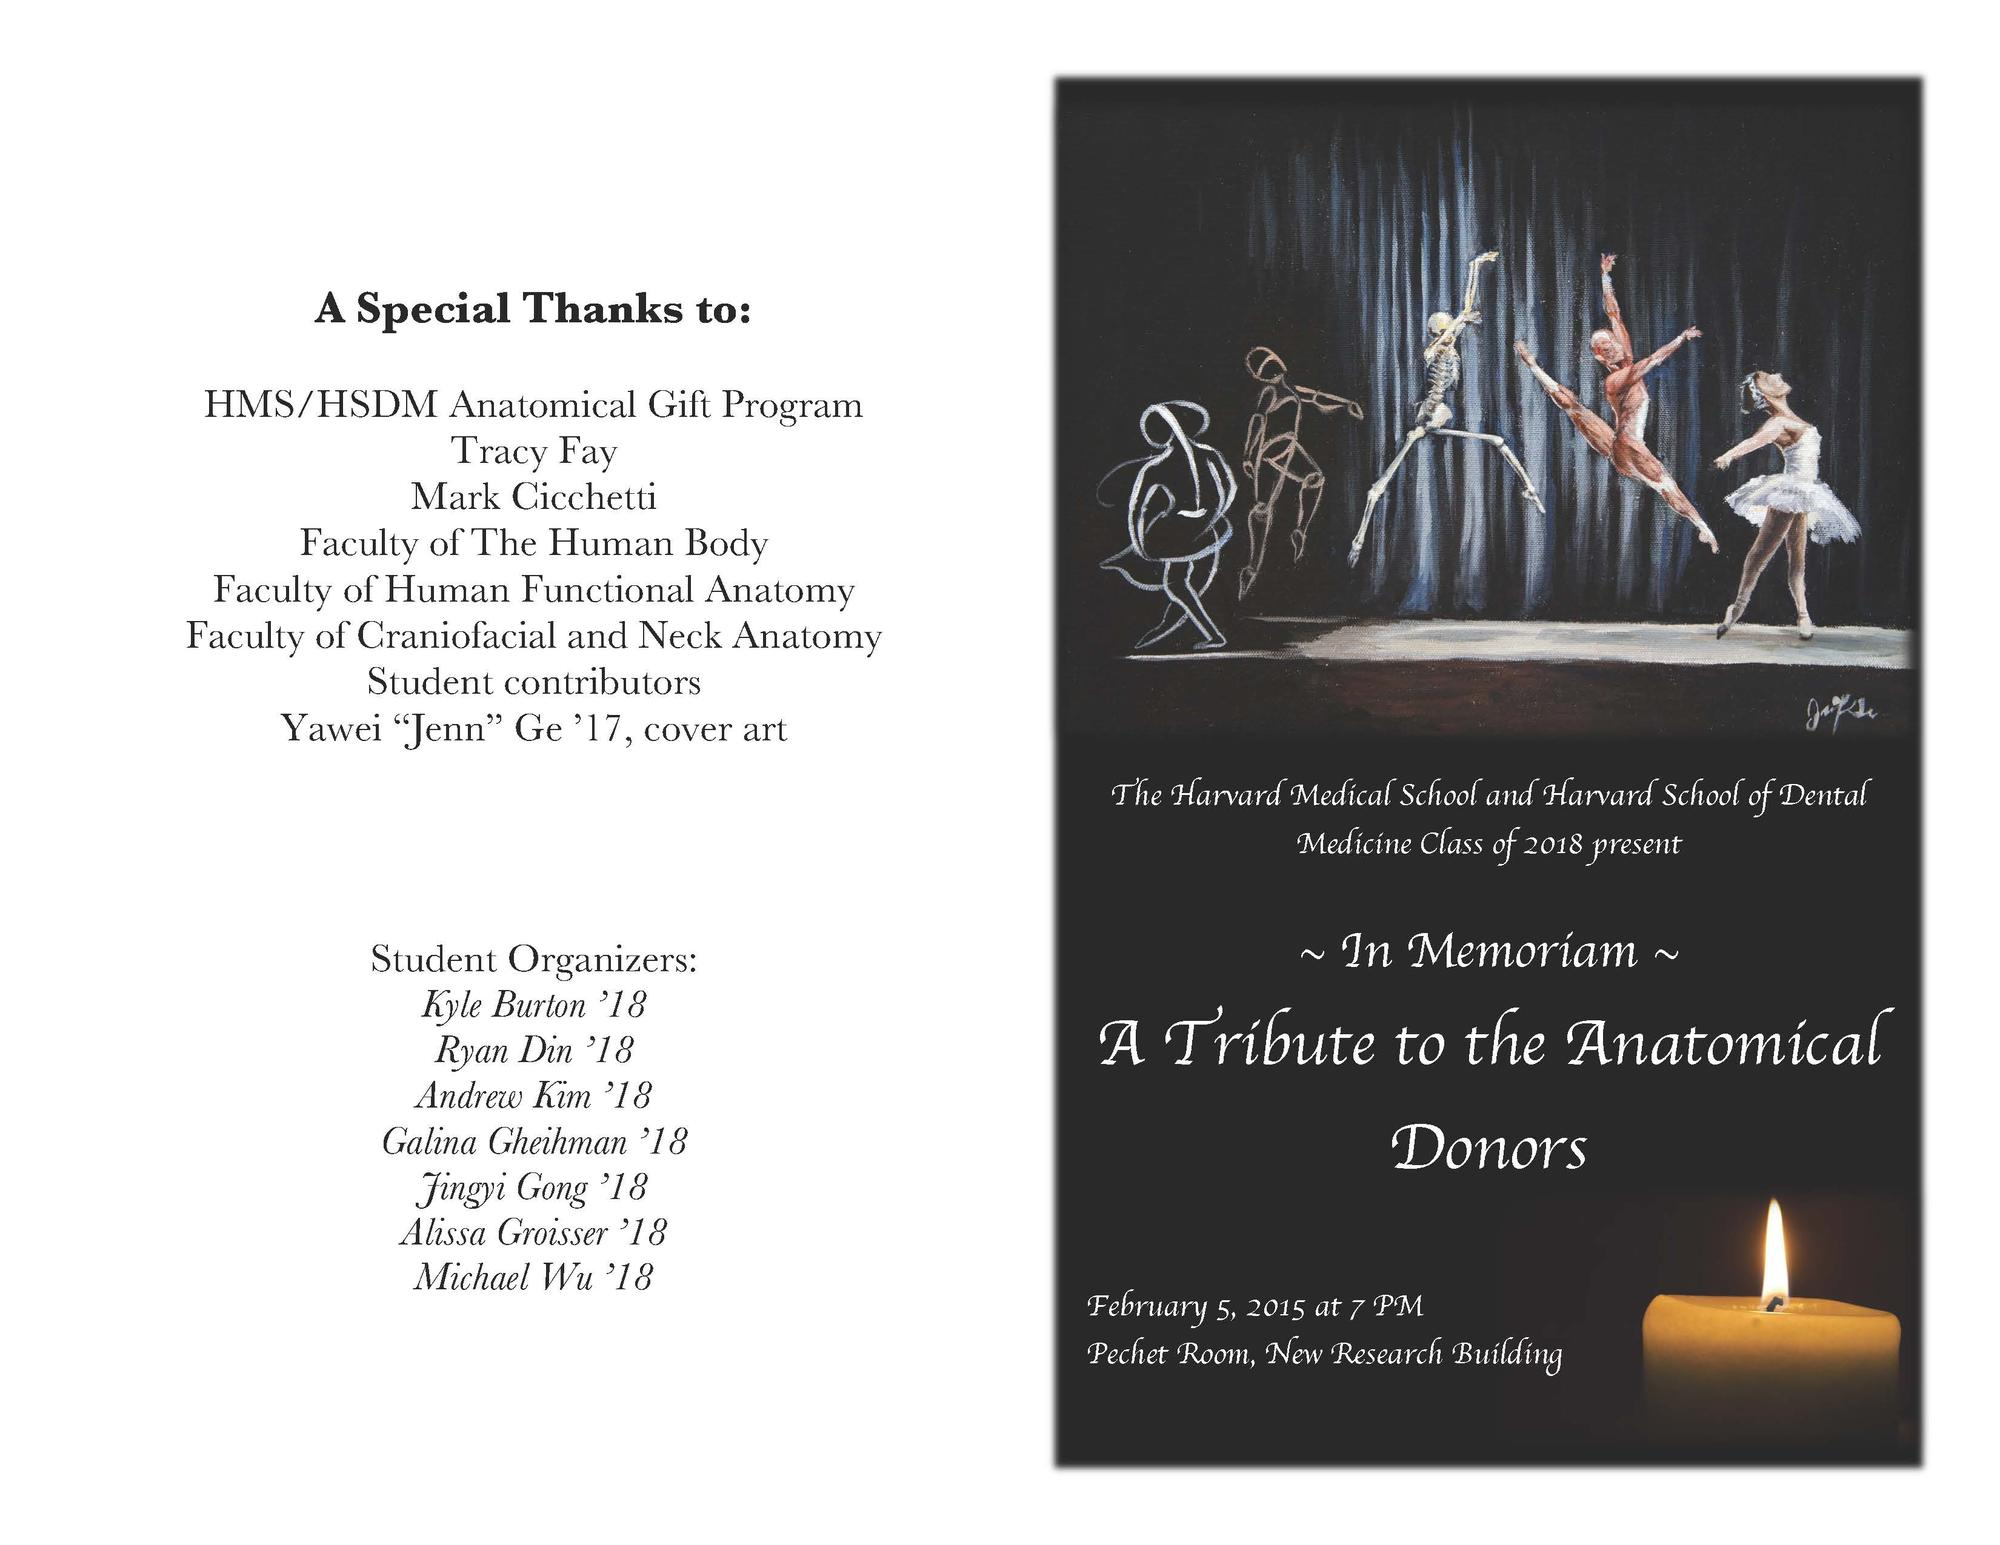 2015.02.05 Anatomical Donor Memorial Service - program front and back